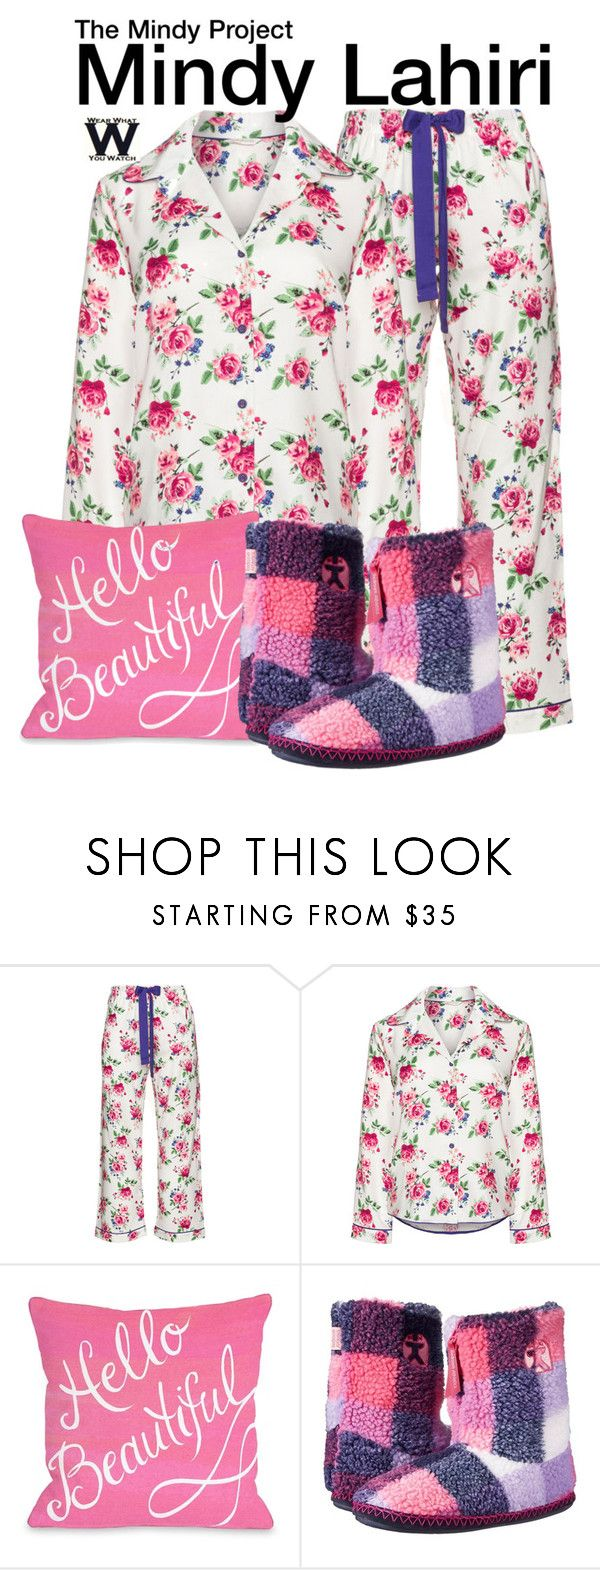 """""""The Mindy Project"""" by wearwhatyouwatch ❤ liked on Polyvore featuring Cyberjammies, Bedroom Athletics, television, wearwhatyouwatch and plus size clothing"""